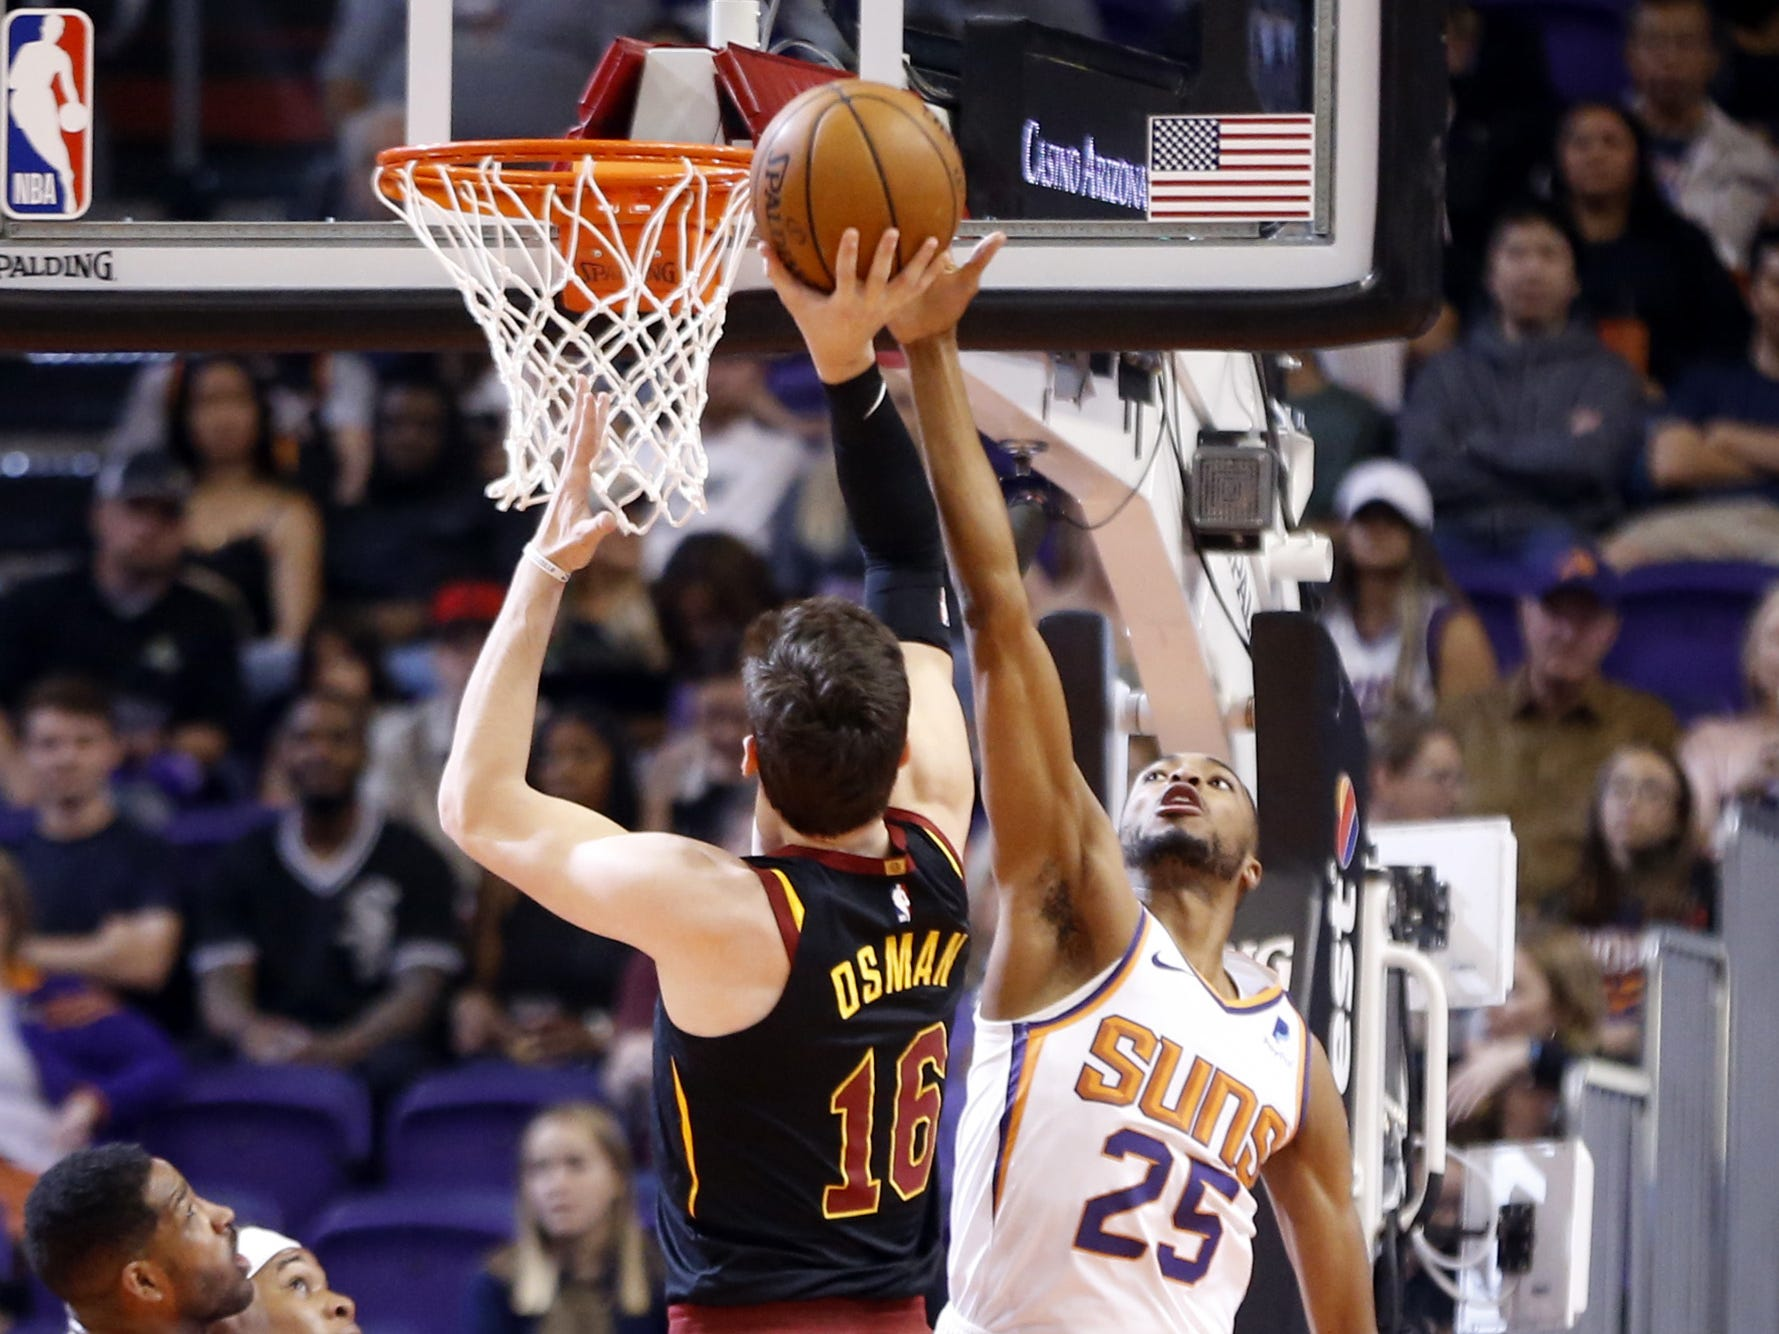 Suns' Mikal Bridges (25) blocks a shot against Cavaliers' Cedi Osman (16) during the first half at Talking Stick Resort Arena in Phoenix, Ariz. on April 1, 2019.